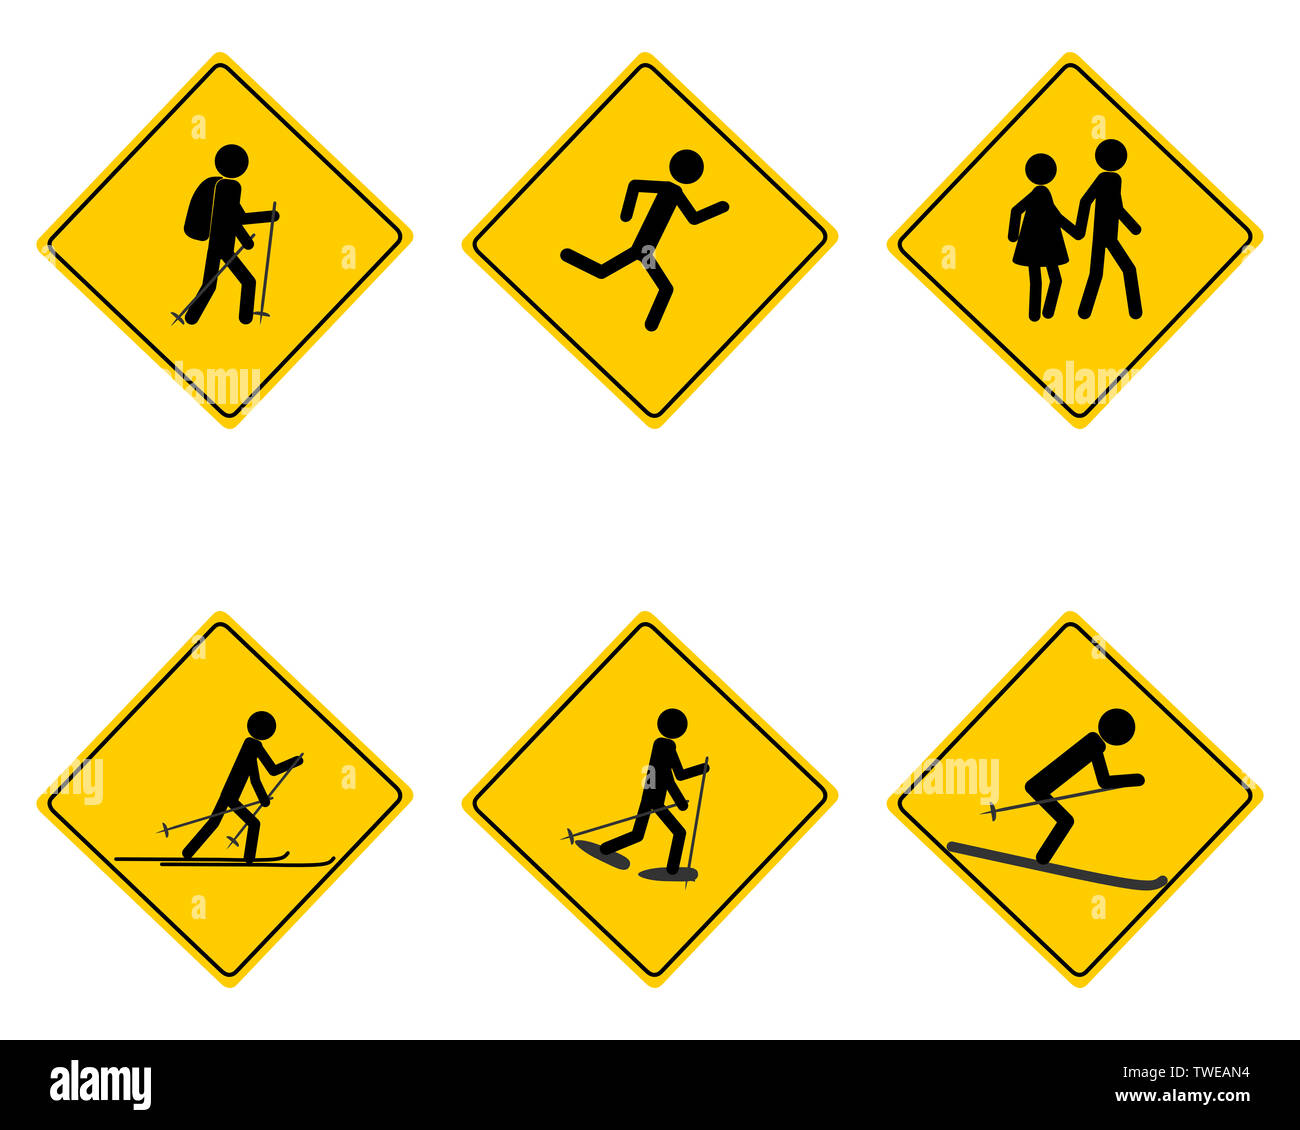 Traffic warning sign for various sports - Stock Image